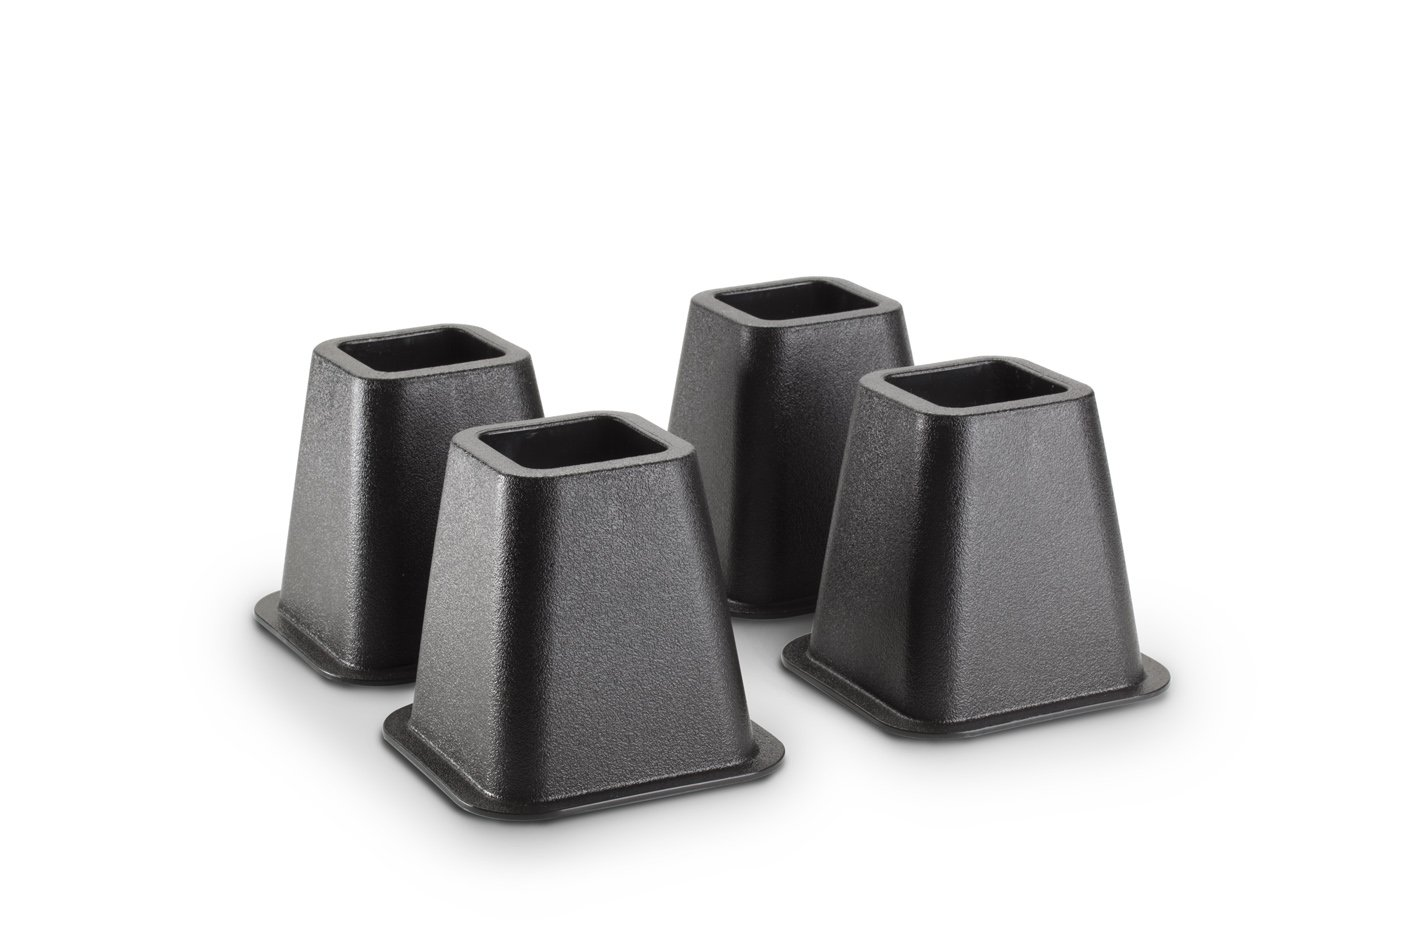 KENNEDY HOME COLLECTIONS  Simplify 6.25 sq.in x 6 in Black Bed Risers,4-pack (Stronger Support)